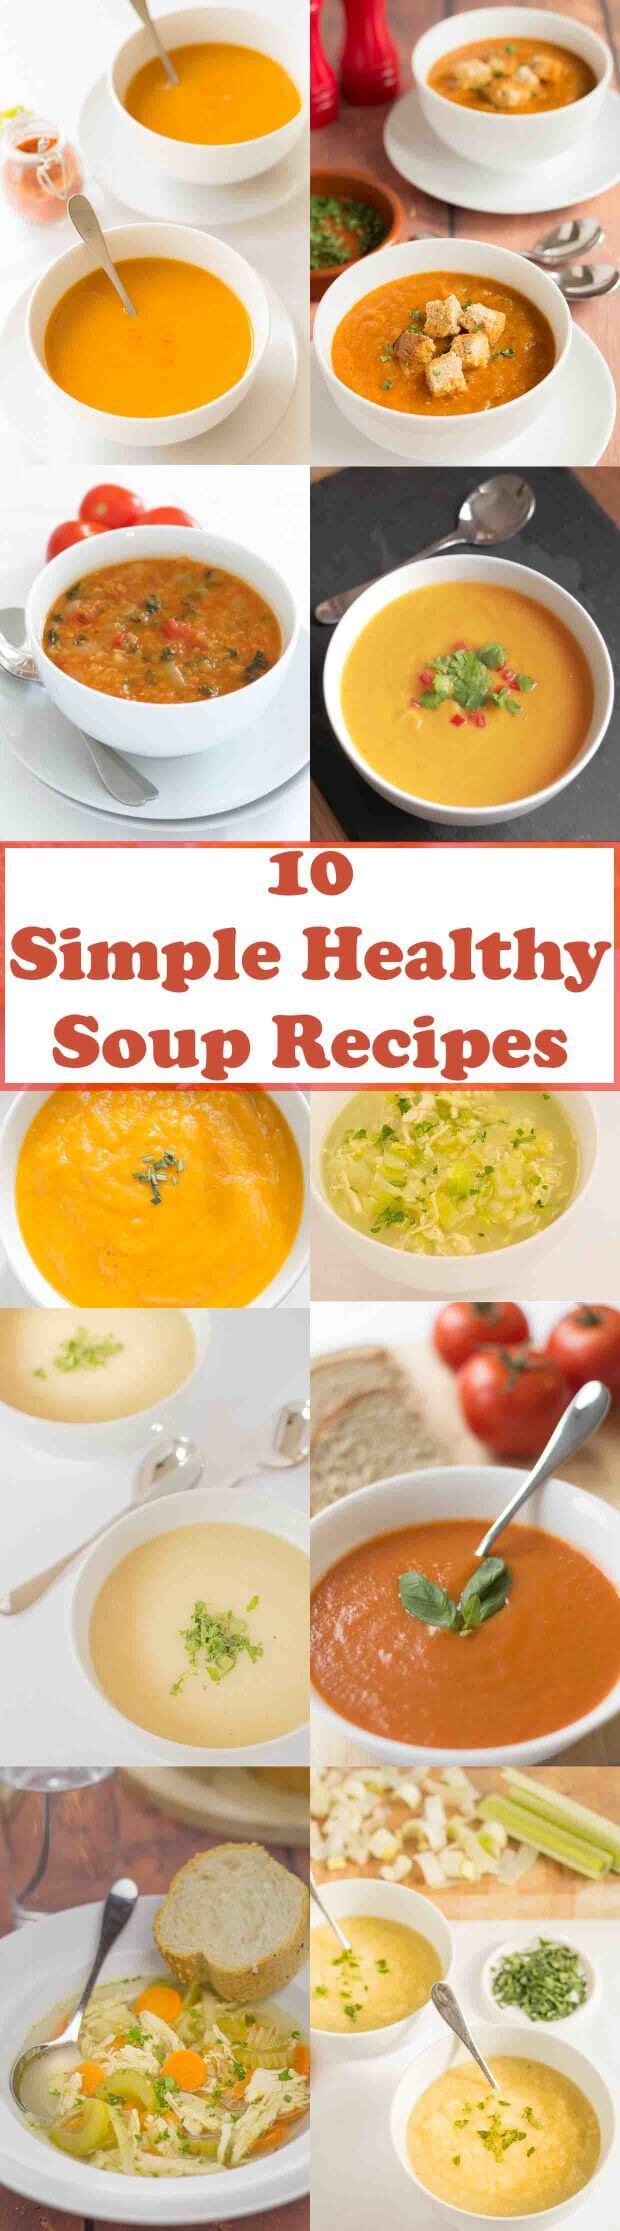 The 10 most popular soup recipes on Neil's Healthy Meals. Here's 10 great soup recipes proven to help you eat healthily, loose weight plus save time and money too!